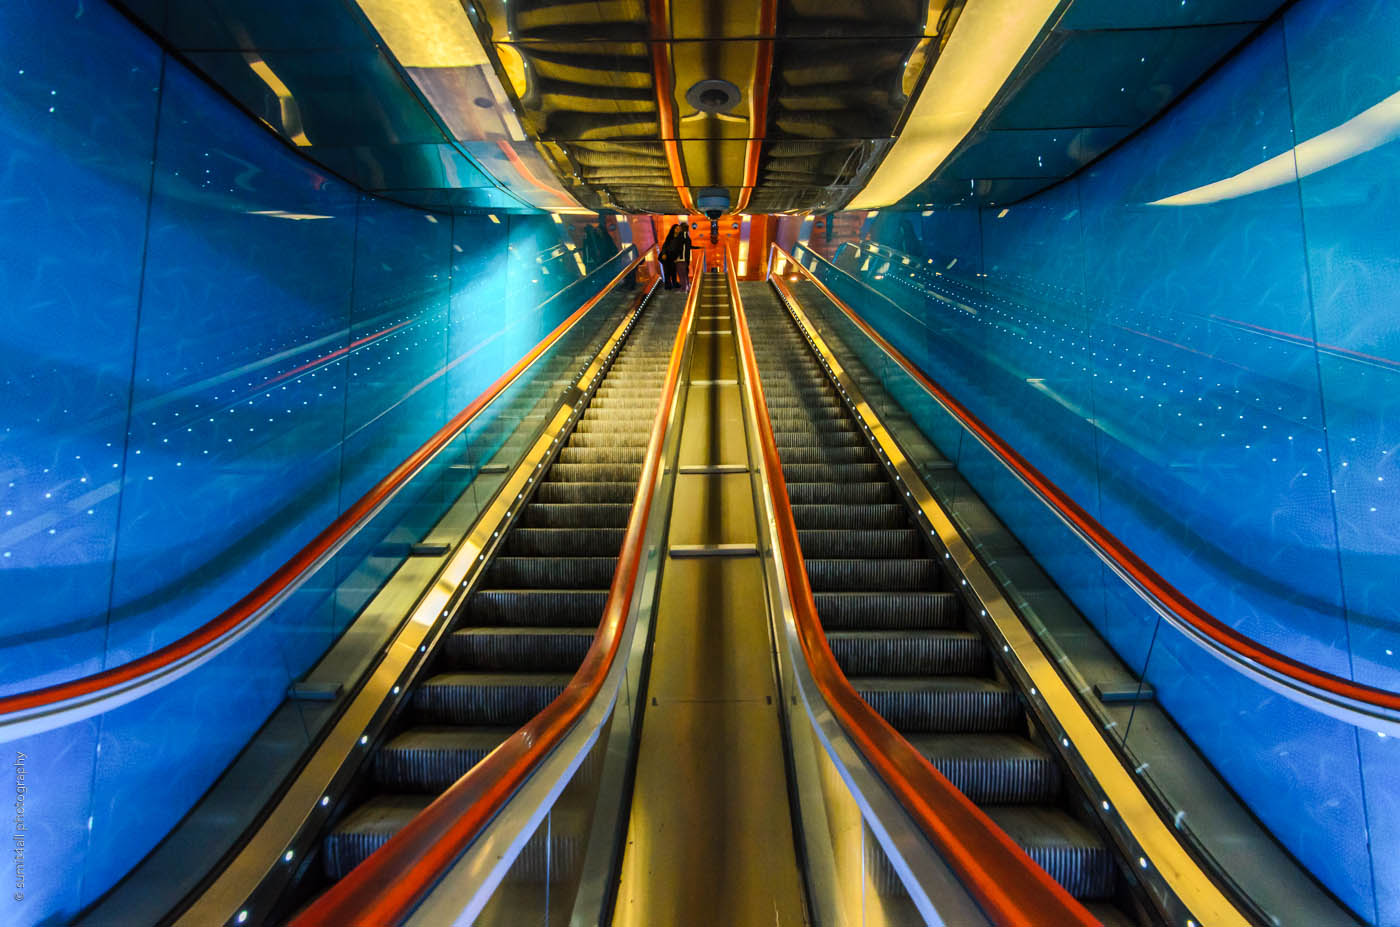 Escalators at Universita Metro Station in Naples